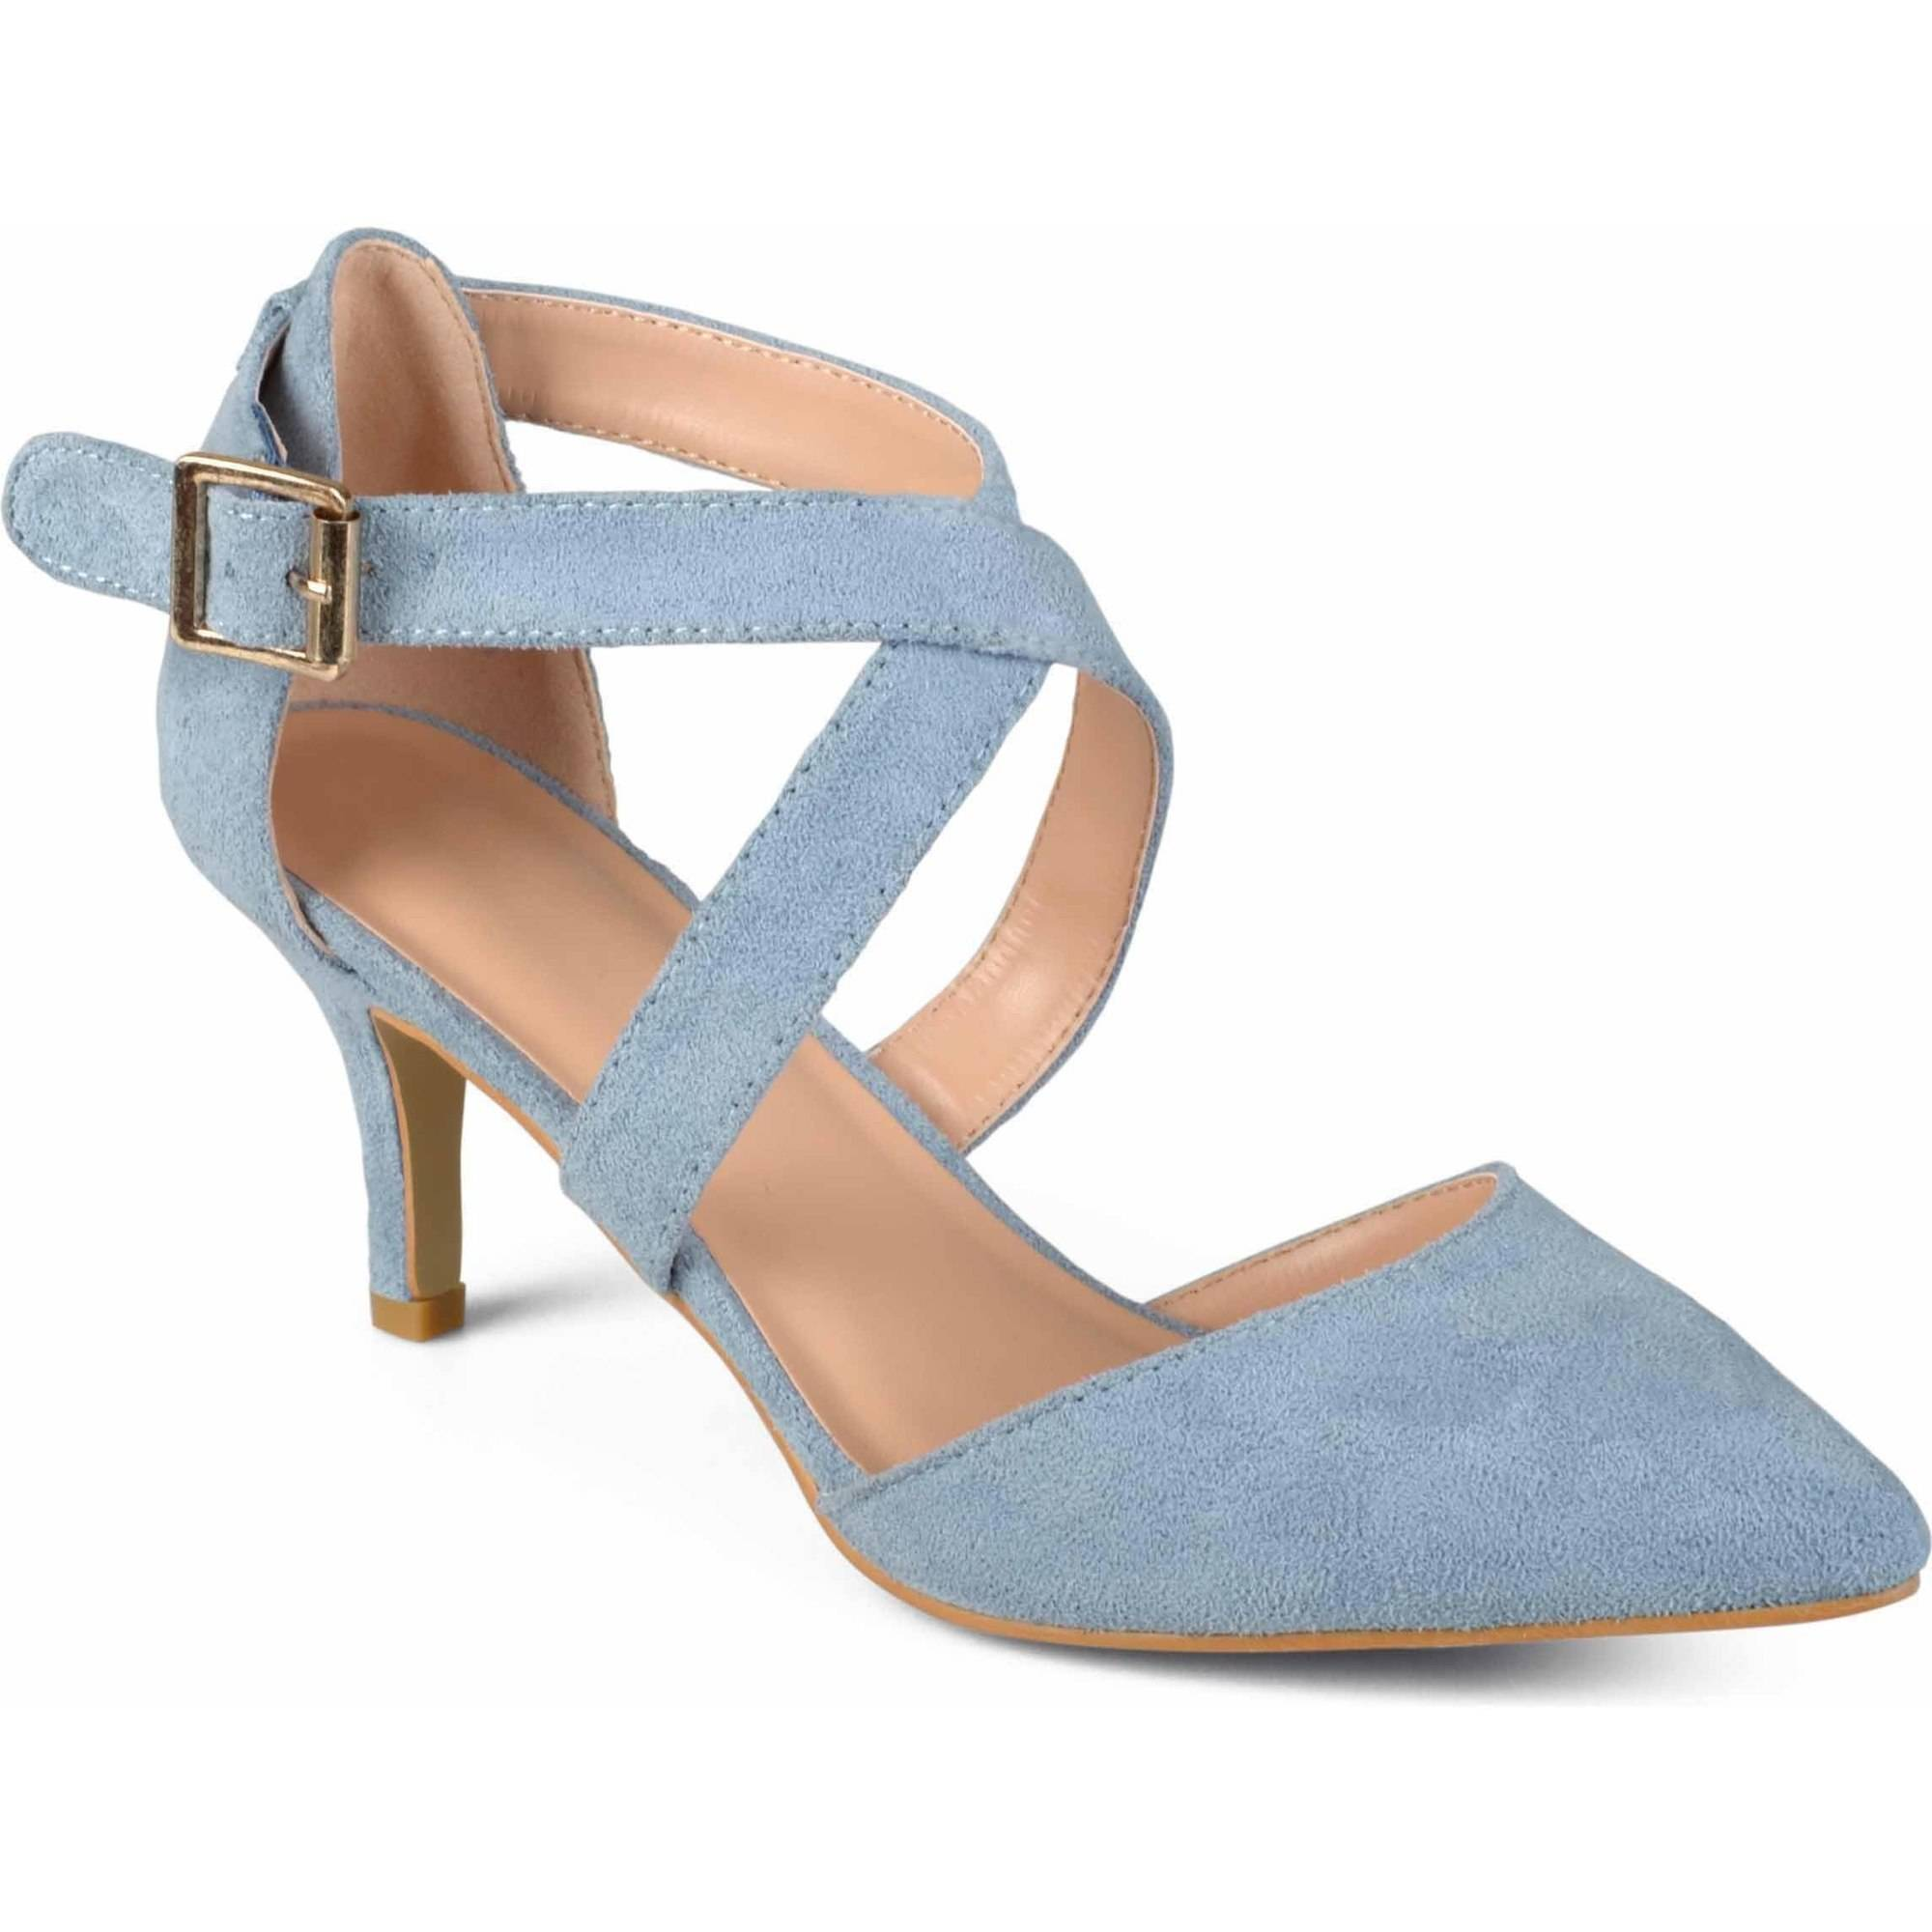 Brinley Co. Womens Cross Strap Faux Suede Pointed Toe Dress High Heels